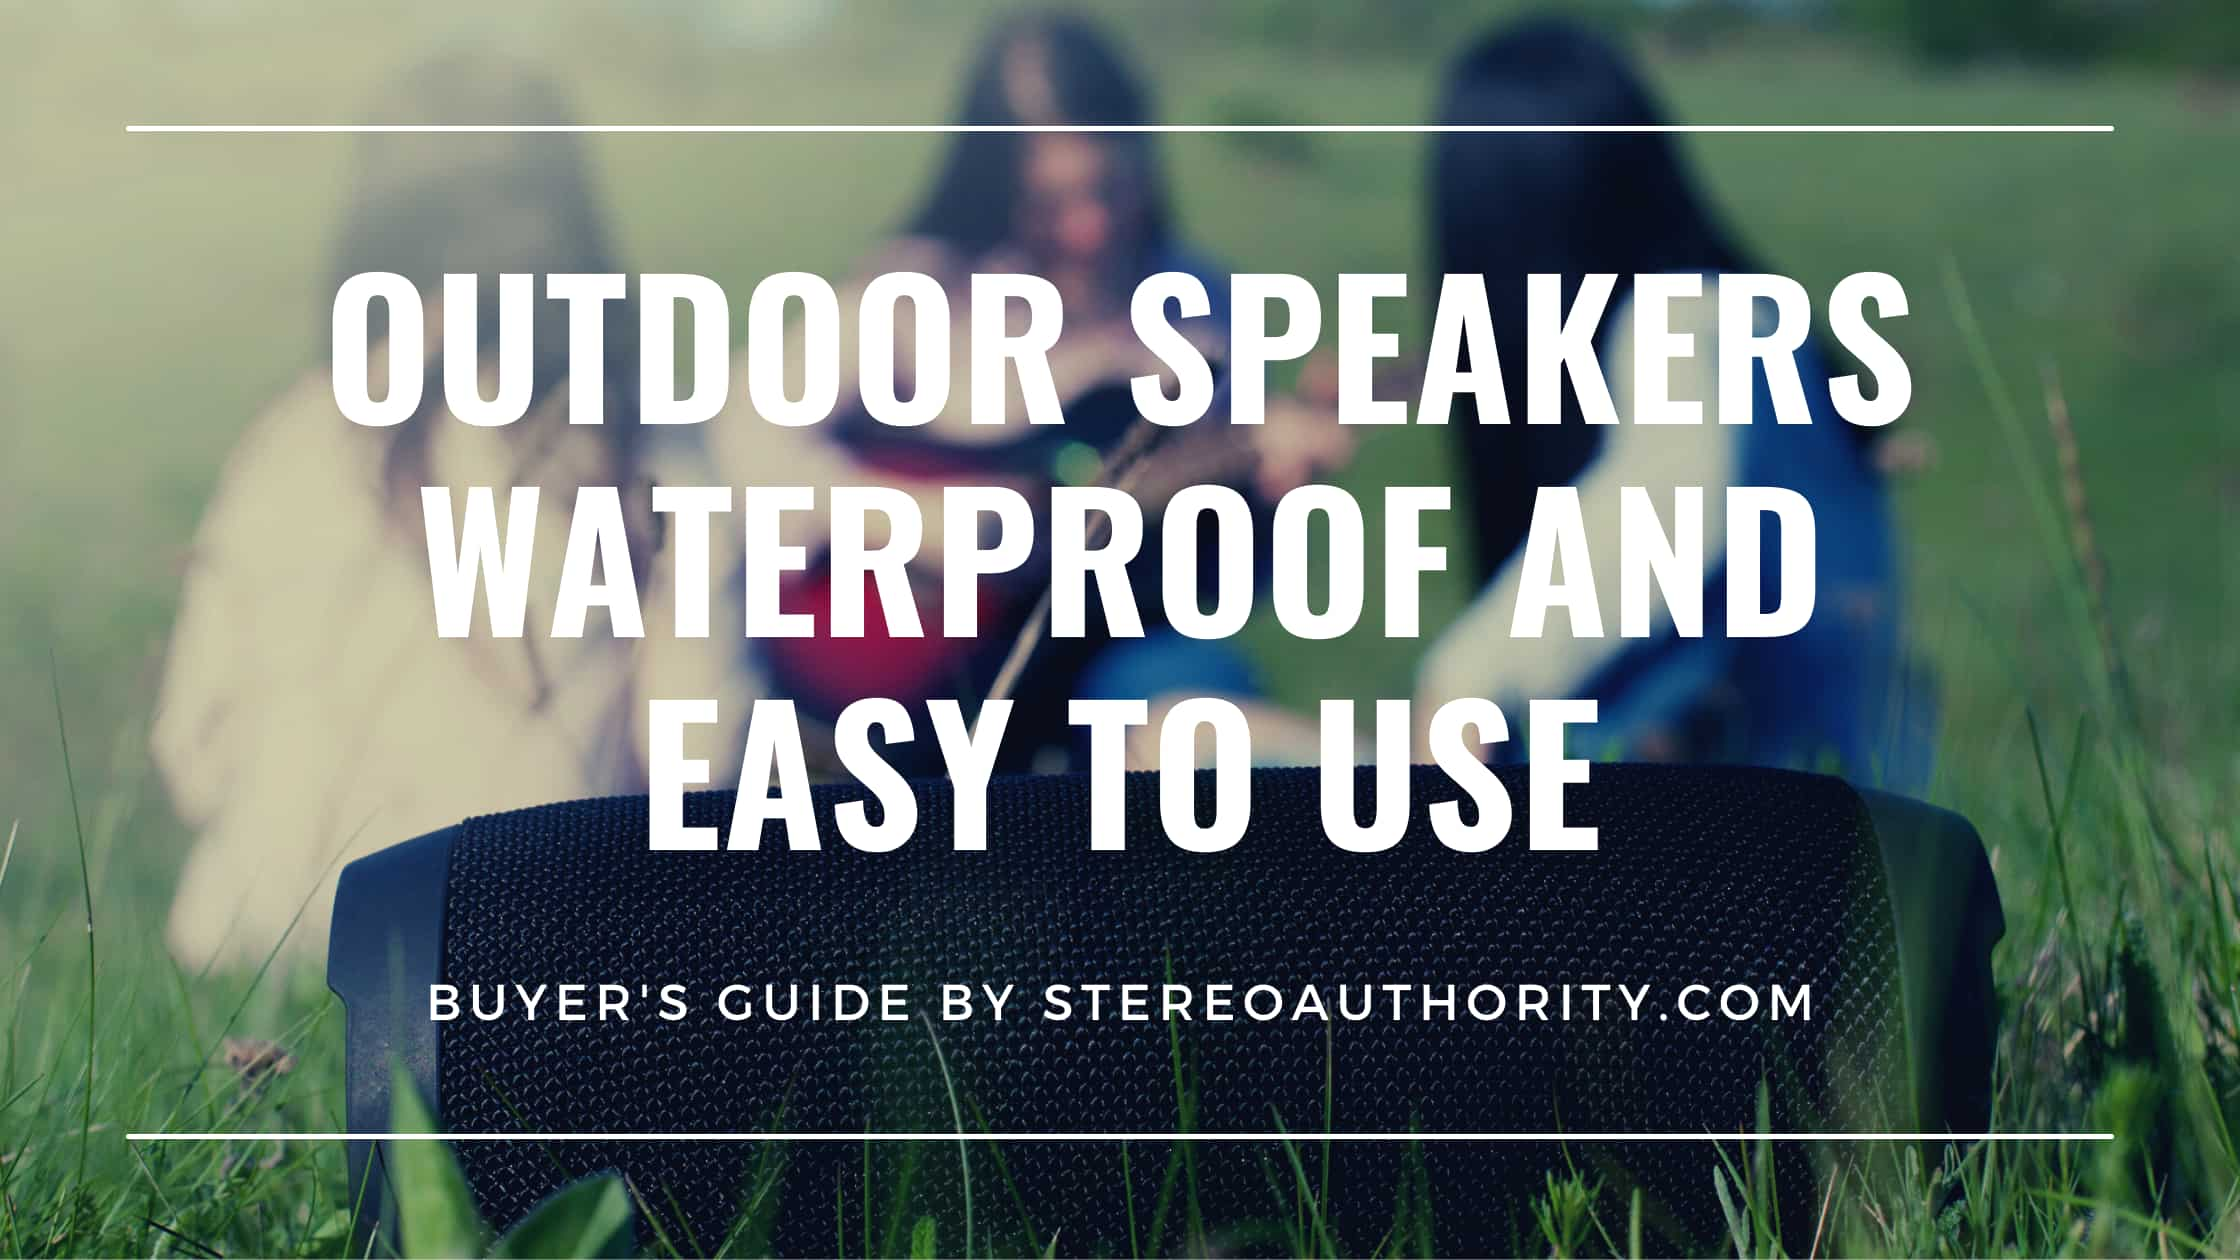 Outdoor Speakers Waterproof and Easy To Use